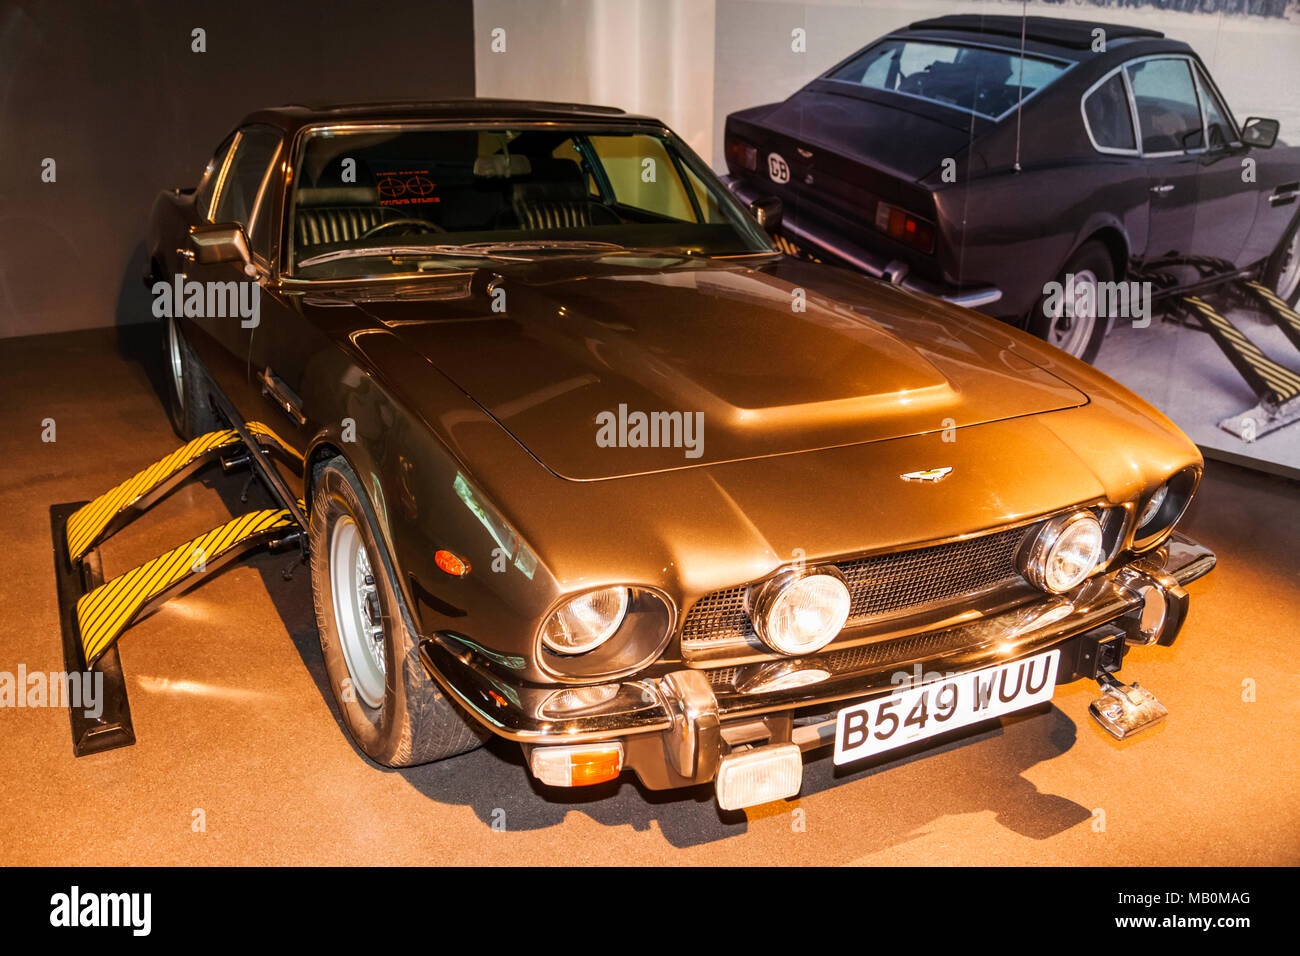 England, London, Covent Garden, London Film Museum, Aston Martin V8 Car from The James Bond Movie The Living Daylights dated 1987 - Stock Image